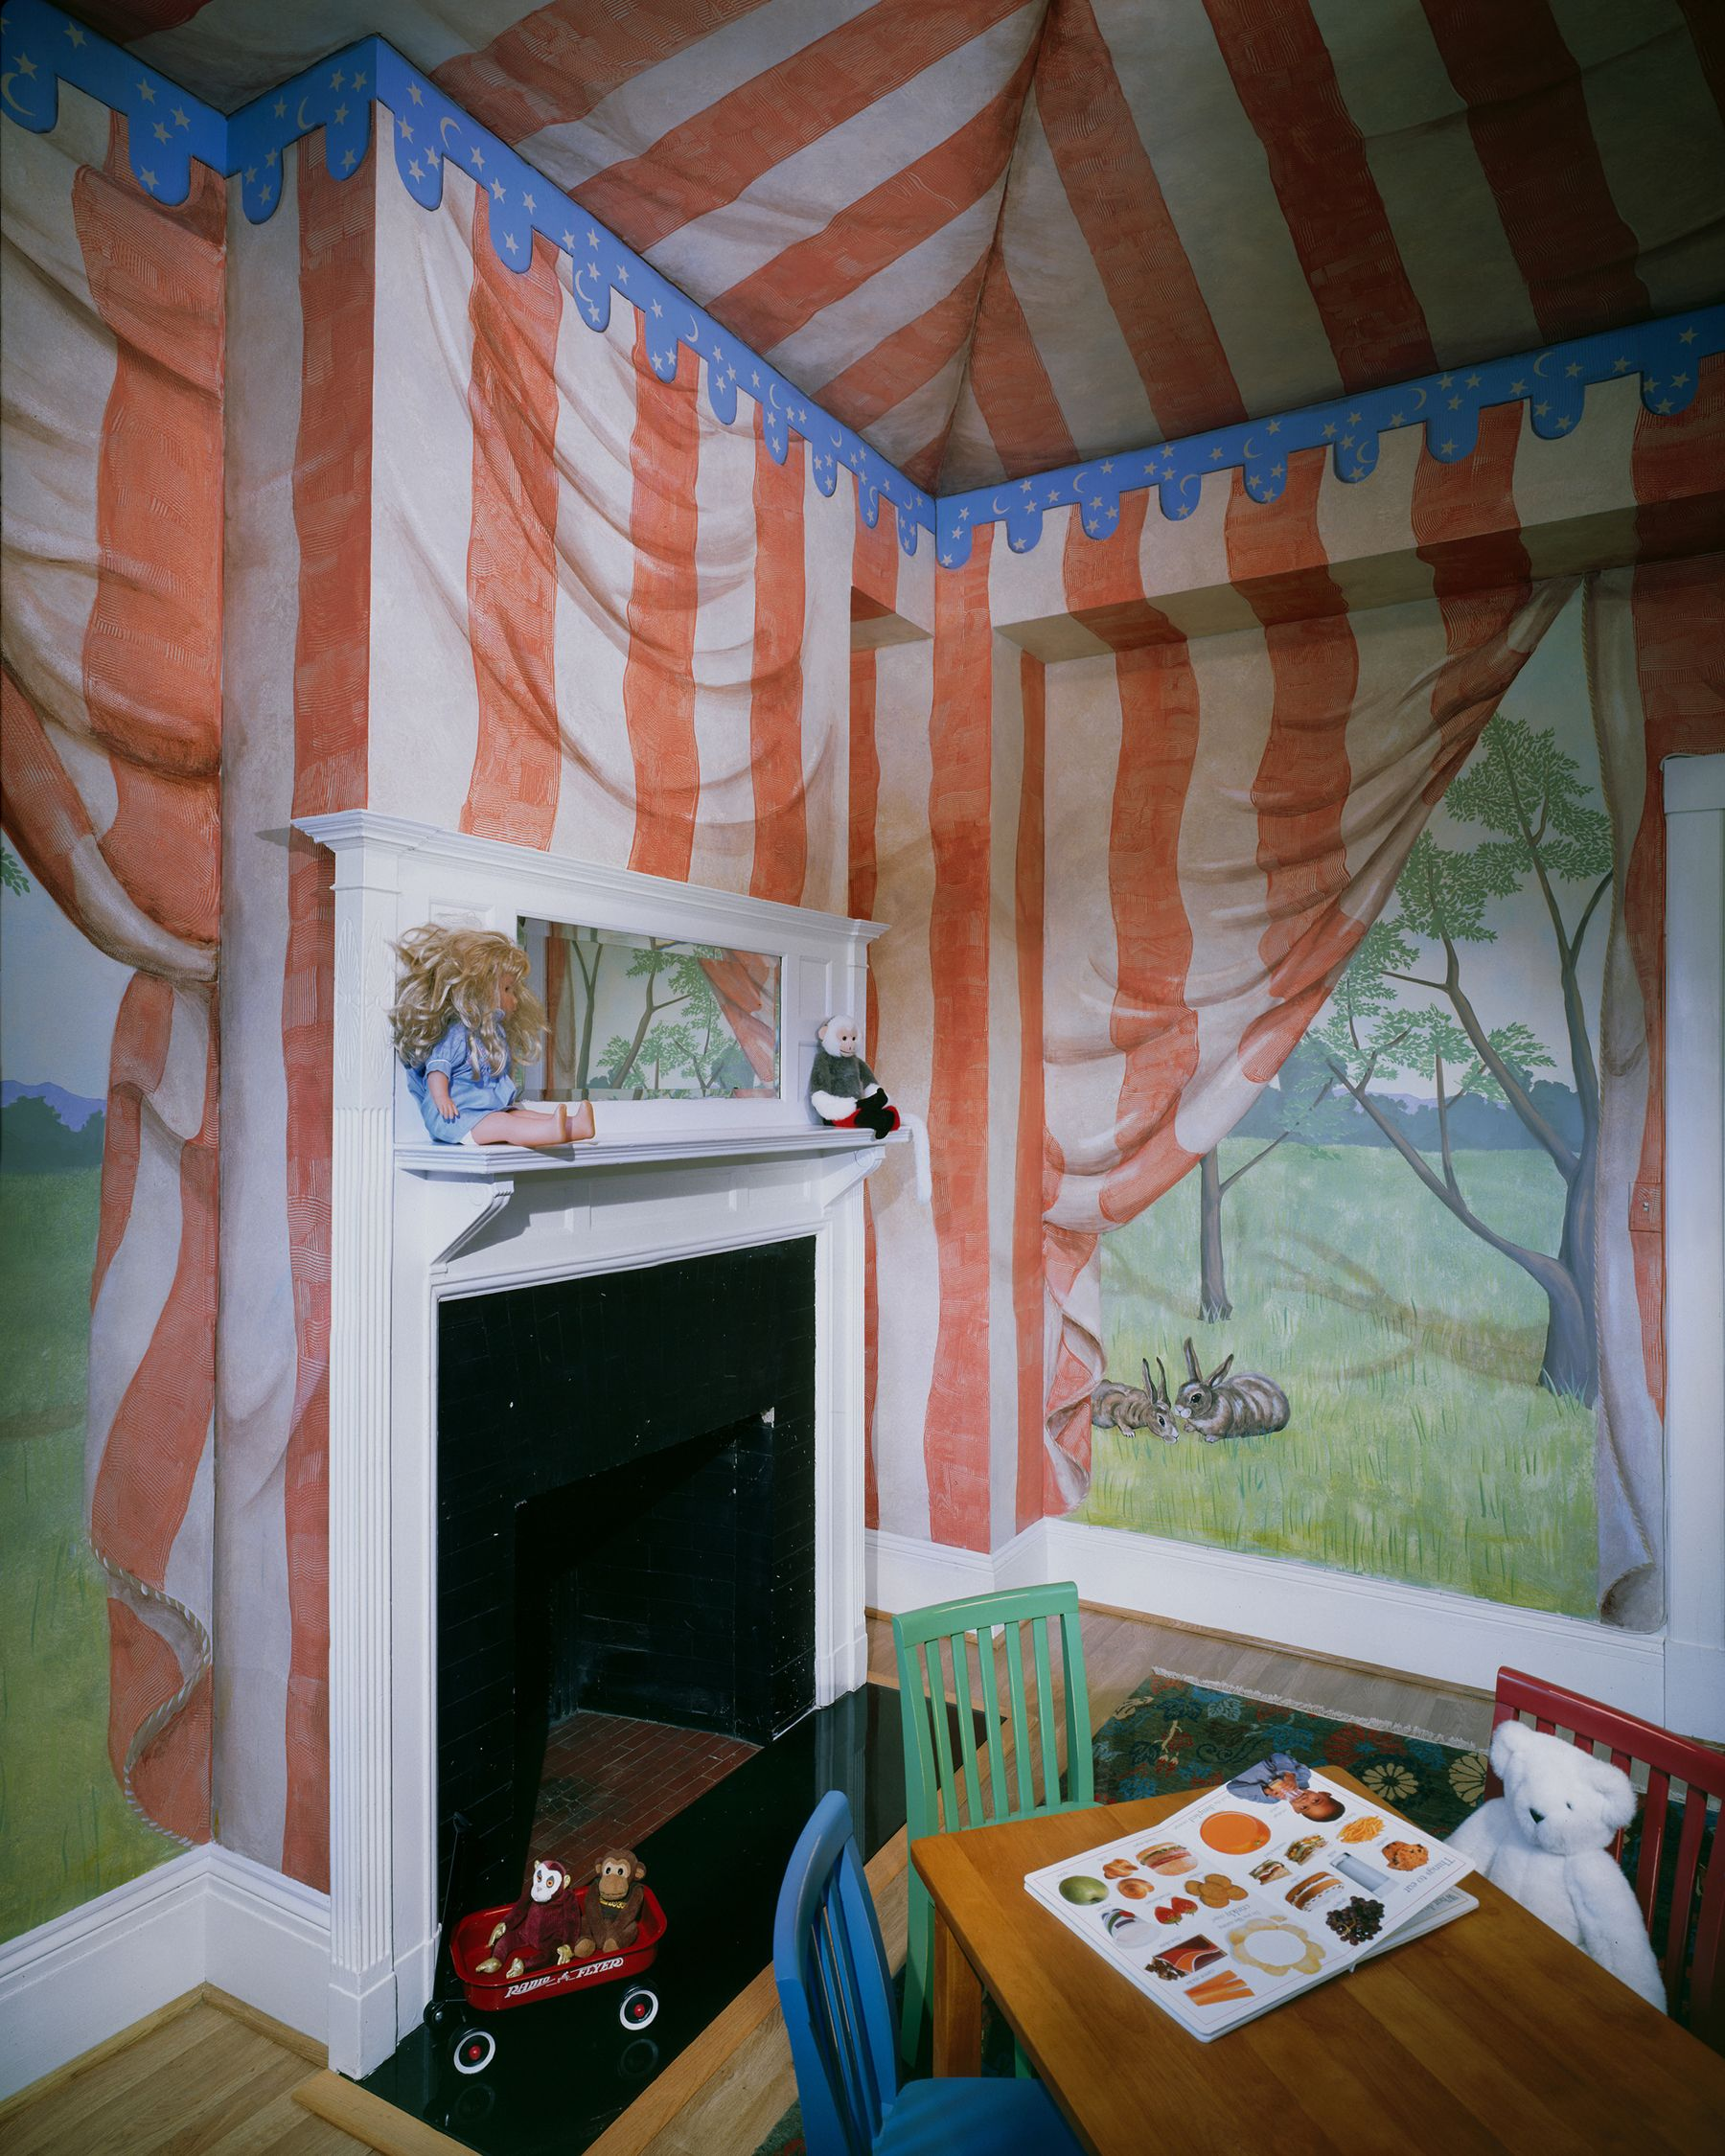 Tent Trompe Loeil Room Painting Childrens Bedroom Idea Playroom Decor